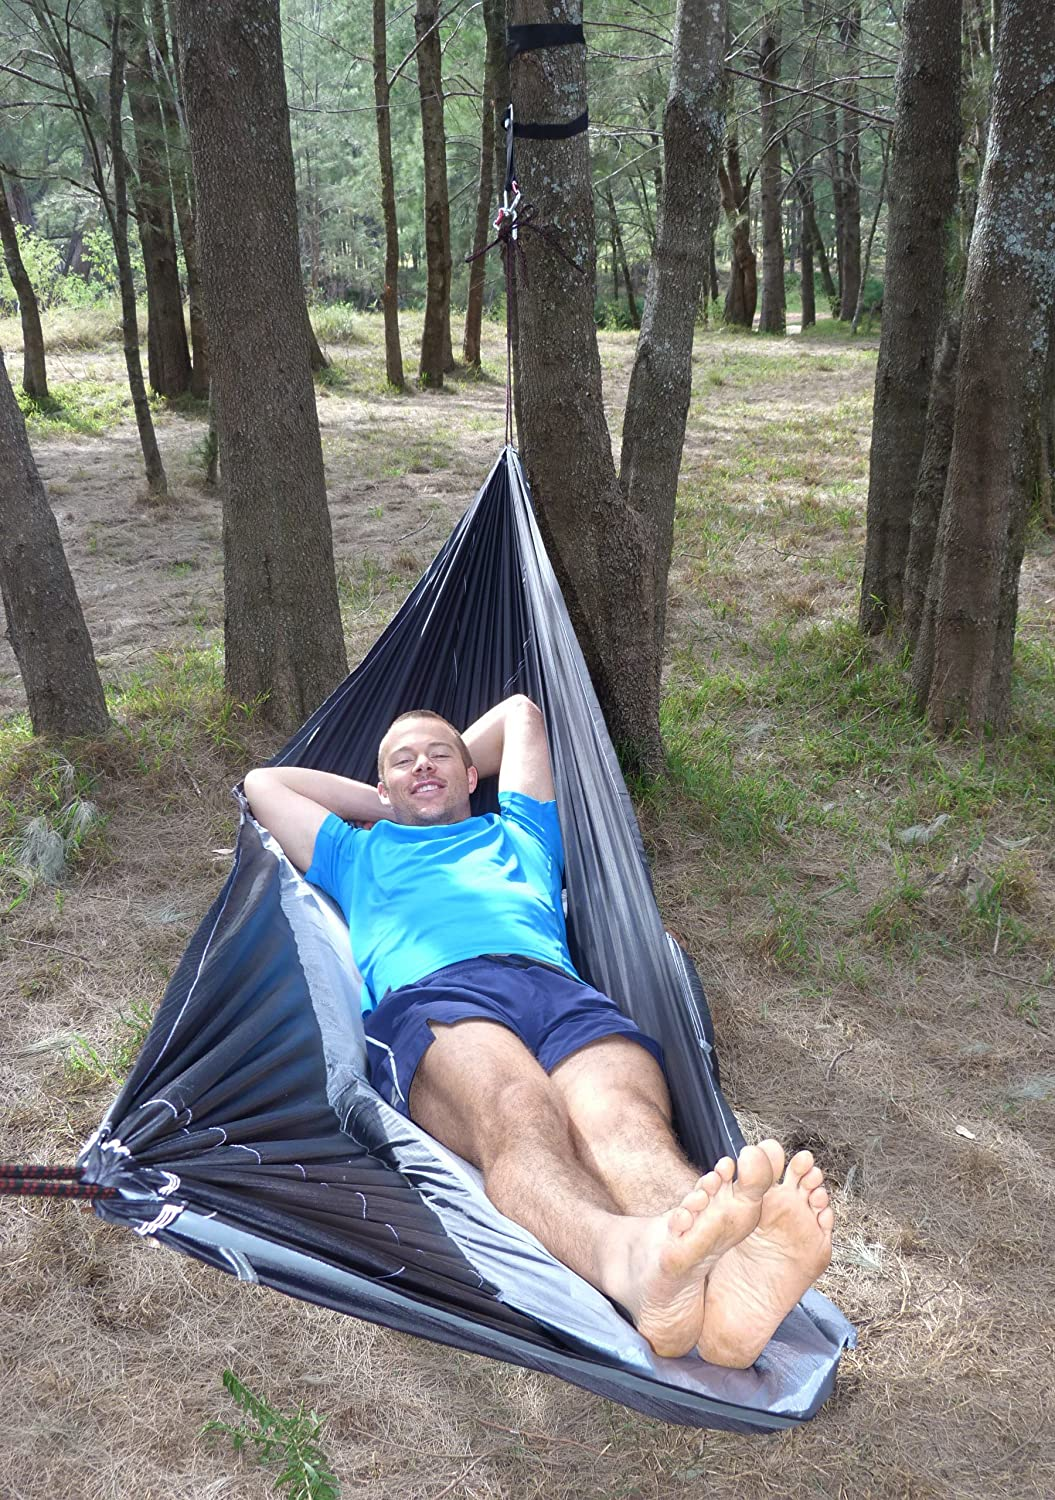 Unique Asymmetrical Design Creates An Amazingly Flat and Insulated Camping Hammock Hammock Bliss Sky Bed Sleeps Like A Bed Integrated Suspension 100 // 250 cm Rope Per Side Hangs Like A Hammock